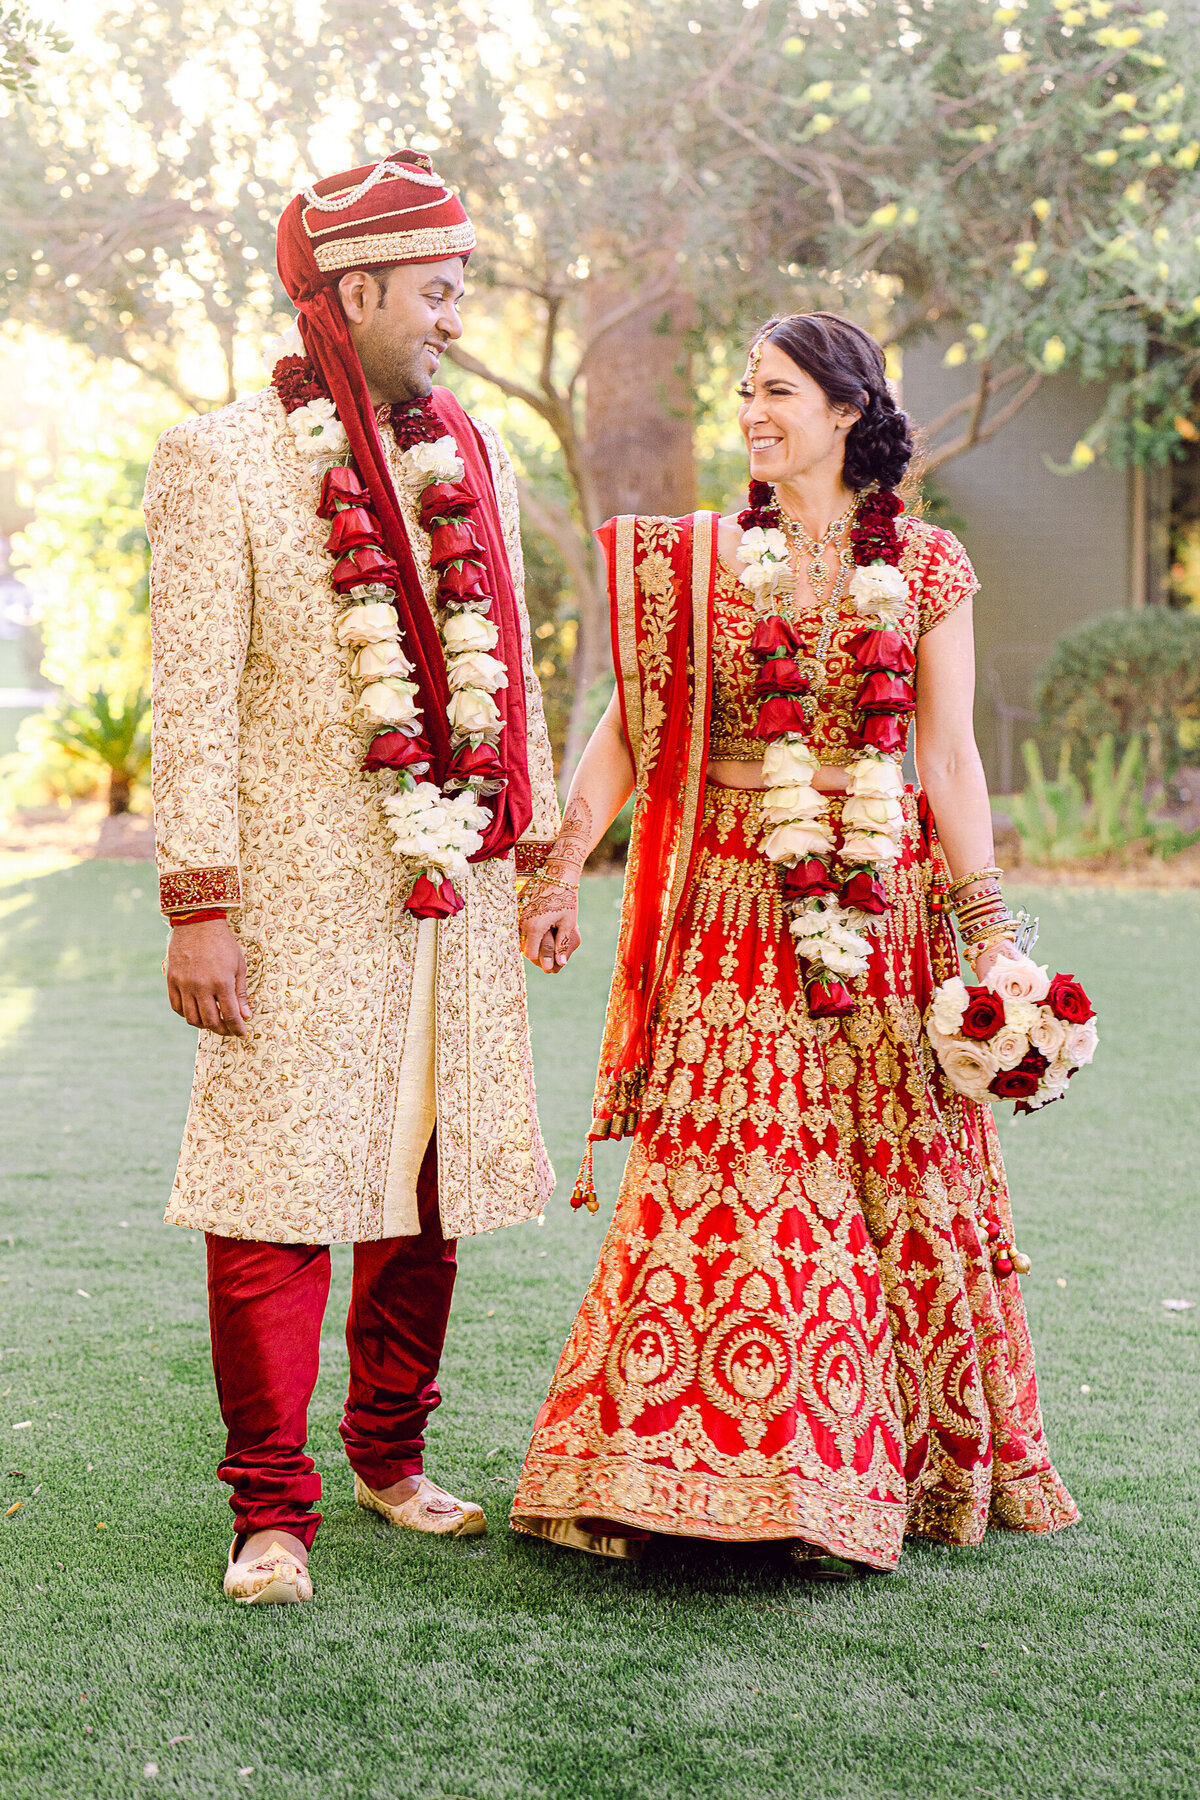 Hindu Wedding In Phoenix Arizona At Hotel Valley Ho - Phoenix Wedding Photographer - Atlas Rose Photography AZ01